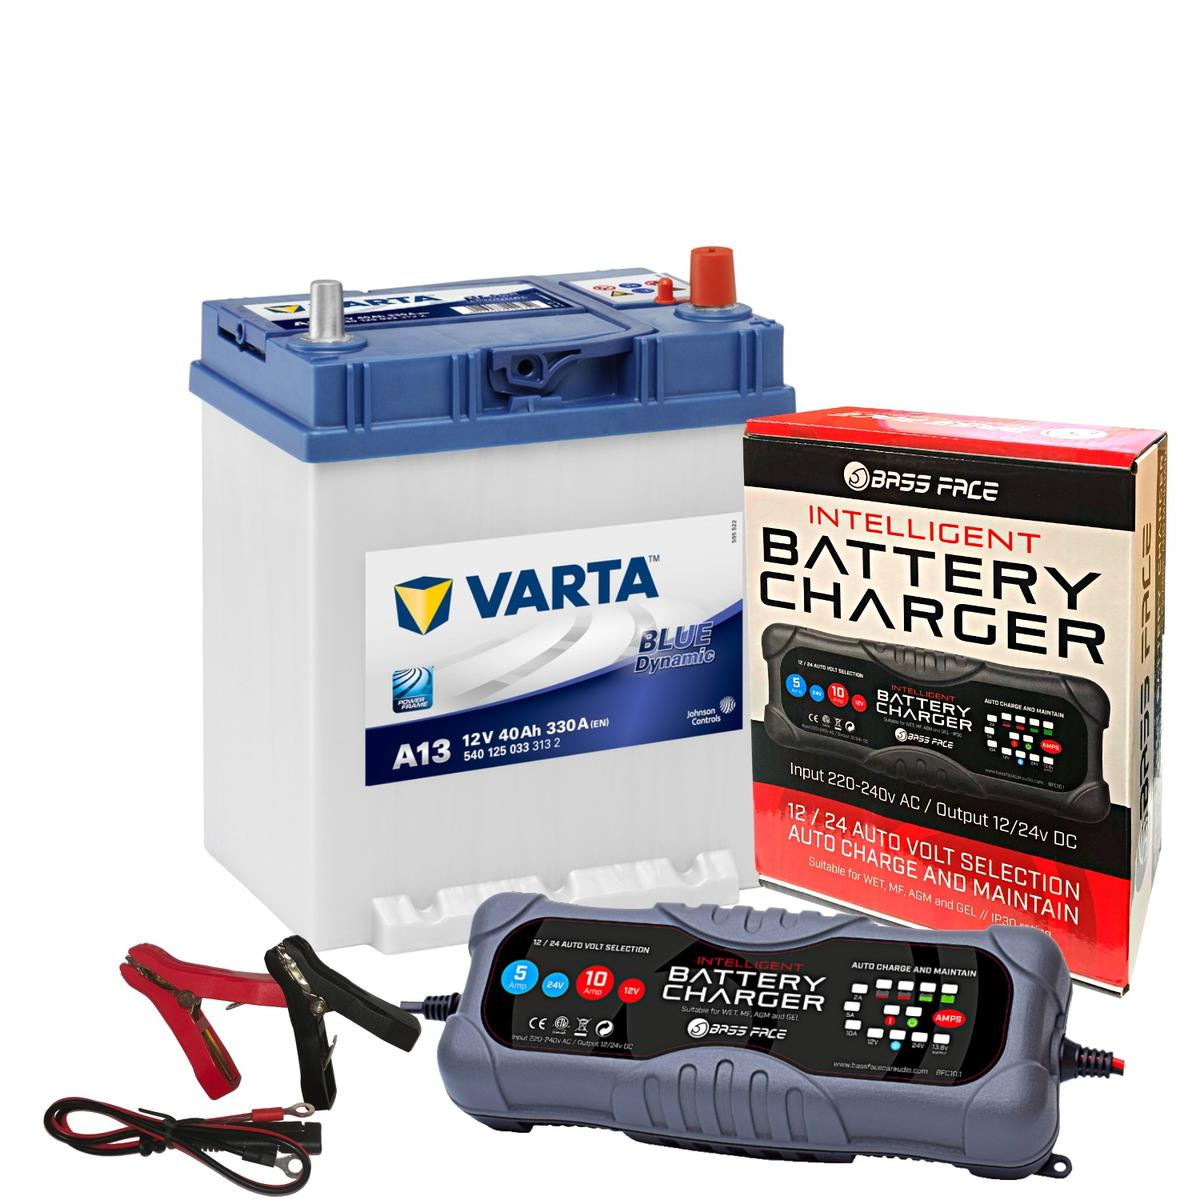 Varta A13 Suzuki Toyato Car Battery 12v 4 Year 054 40Ah 330CCA W/ 10 Amp Charger